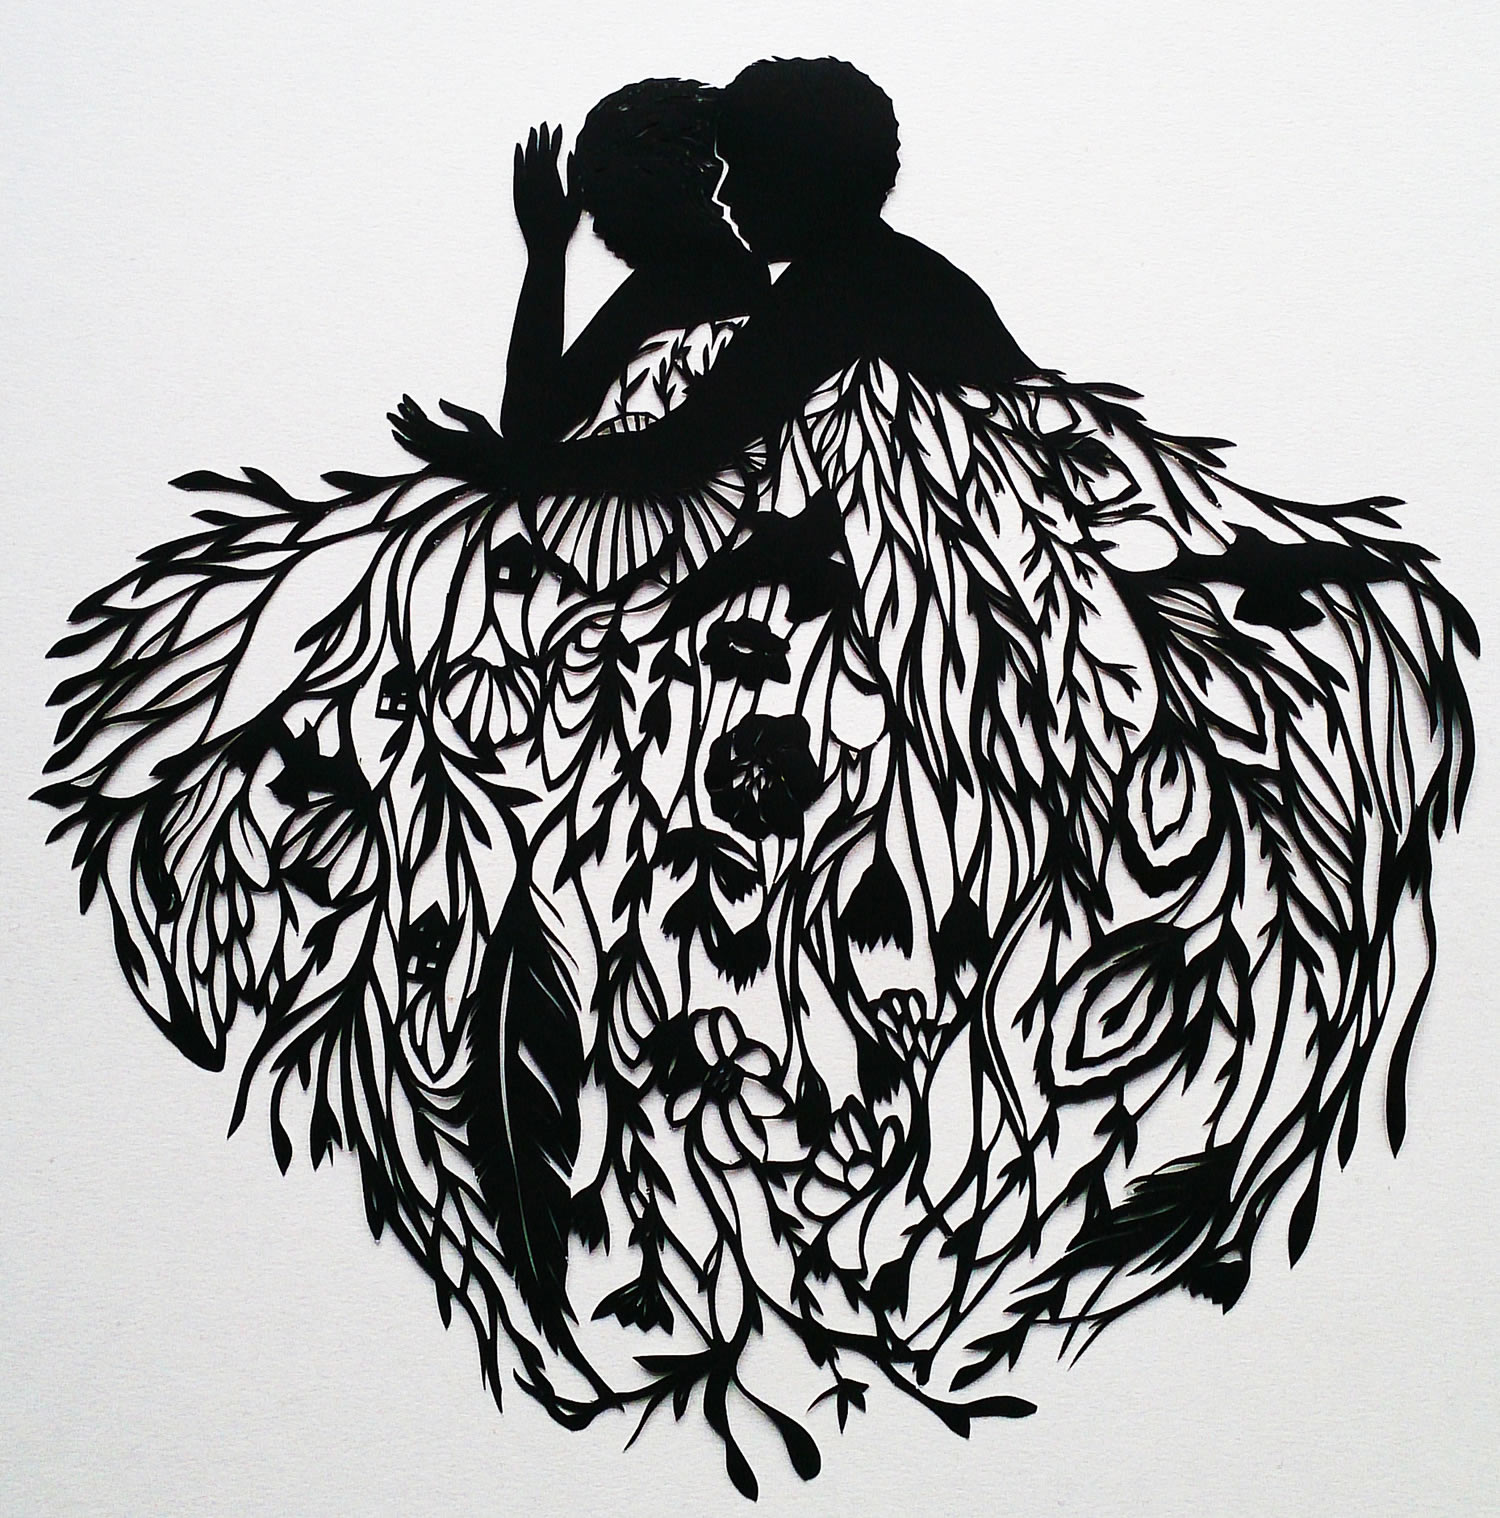 two silhouettes cut out of paper